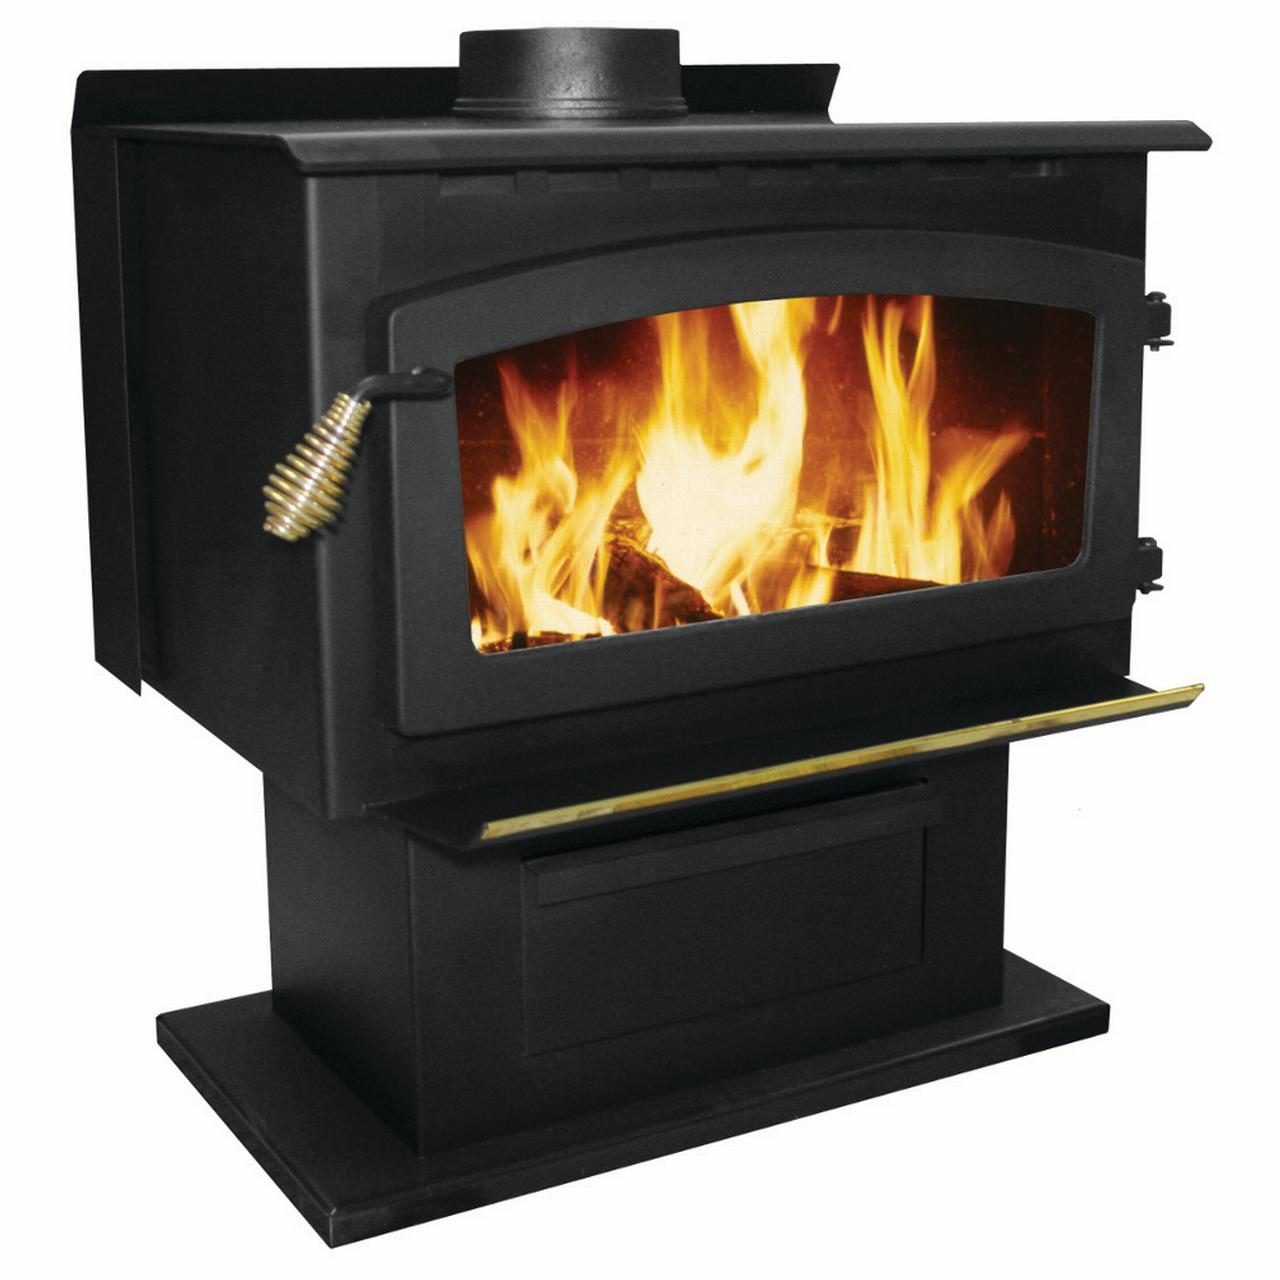 King 89,000 Btu 2000 Sq. Ft.EPA Certified wood Stove